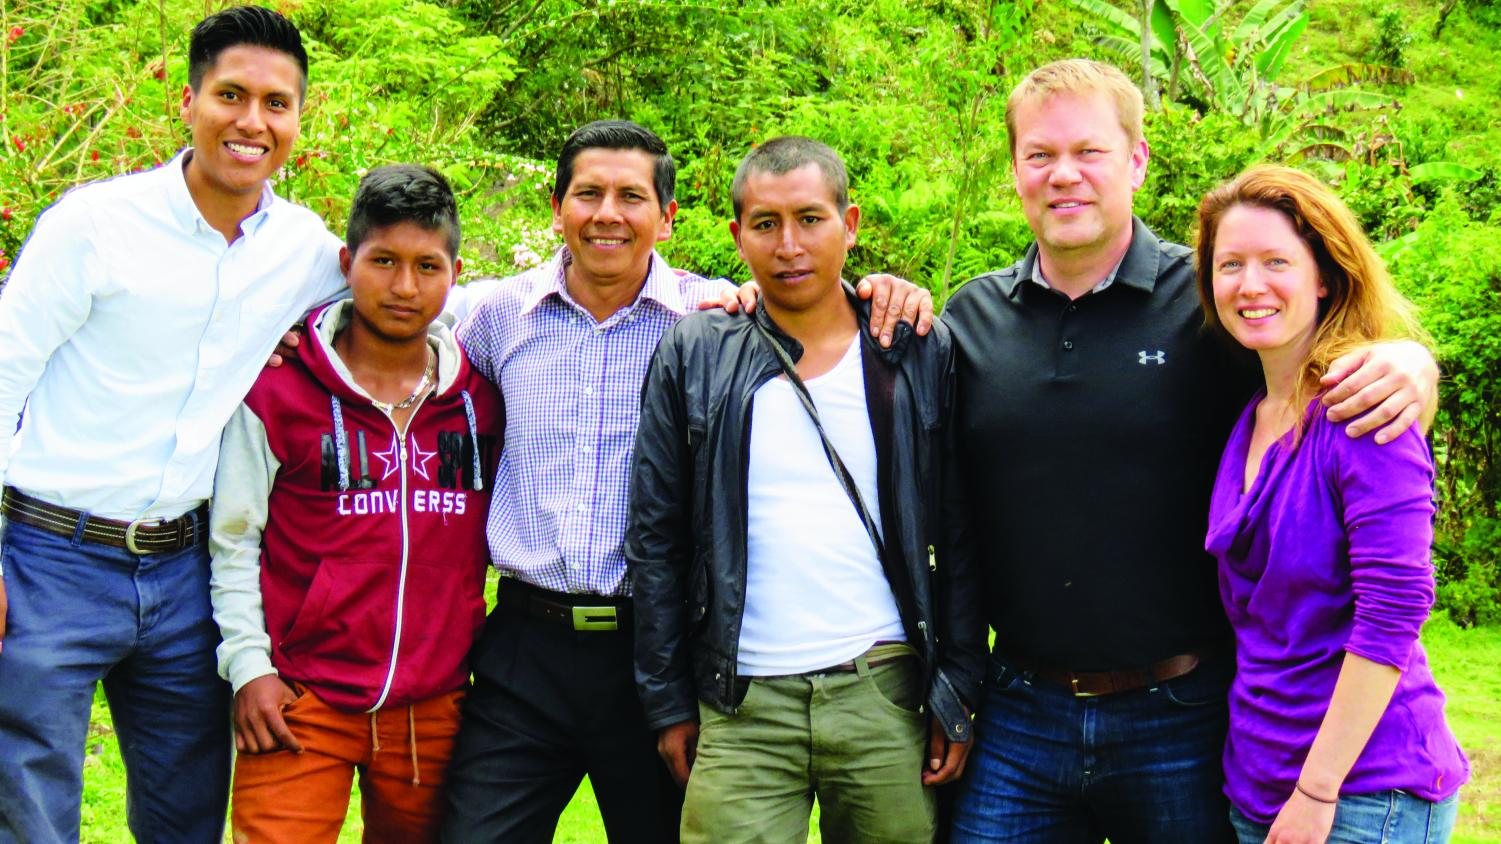 Left to right: Ervin Liz ('17), his neighbor Manuel Andela, Ervin Liz's father Isidro Liz,  Colombian Coffee Connection's main farmer Misael Muse, Jon Baklund, and Tara Baklund.